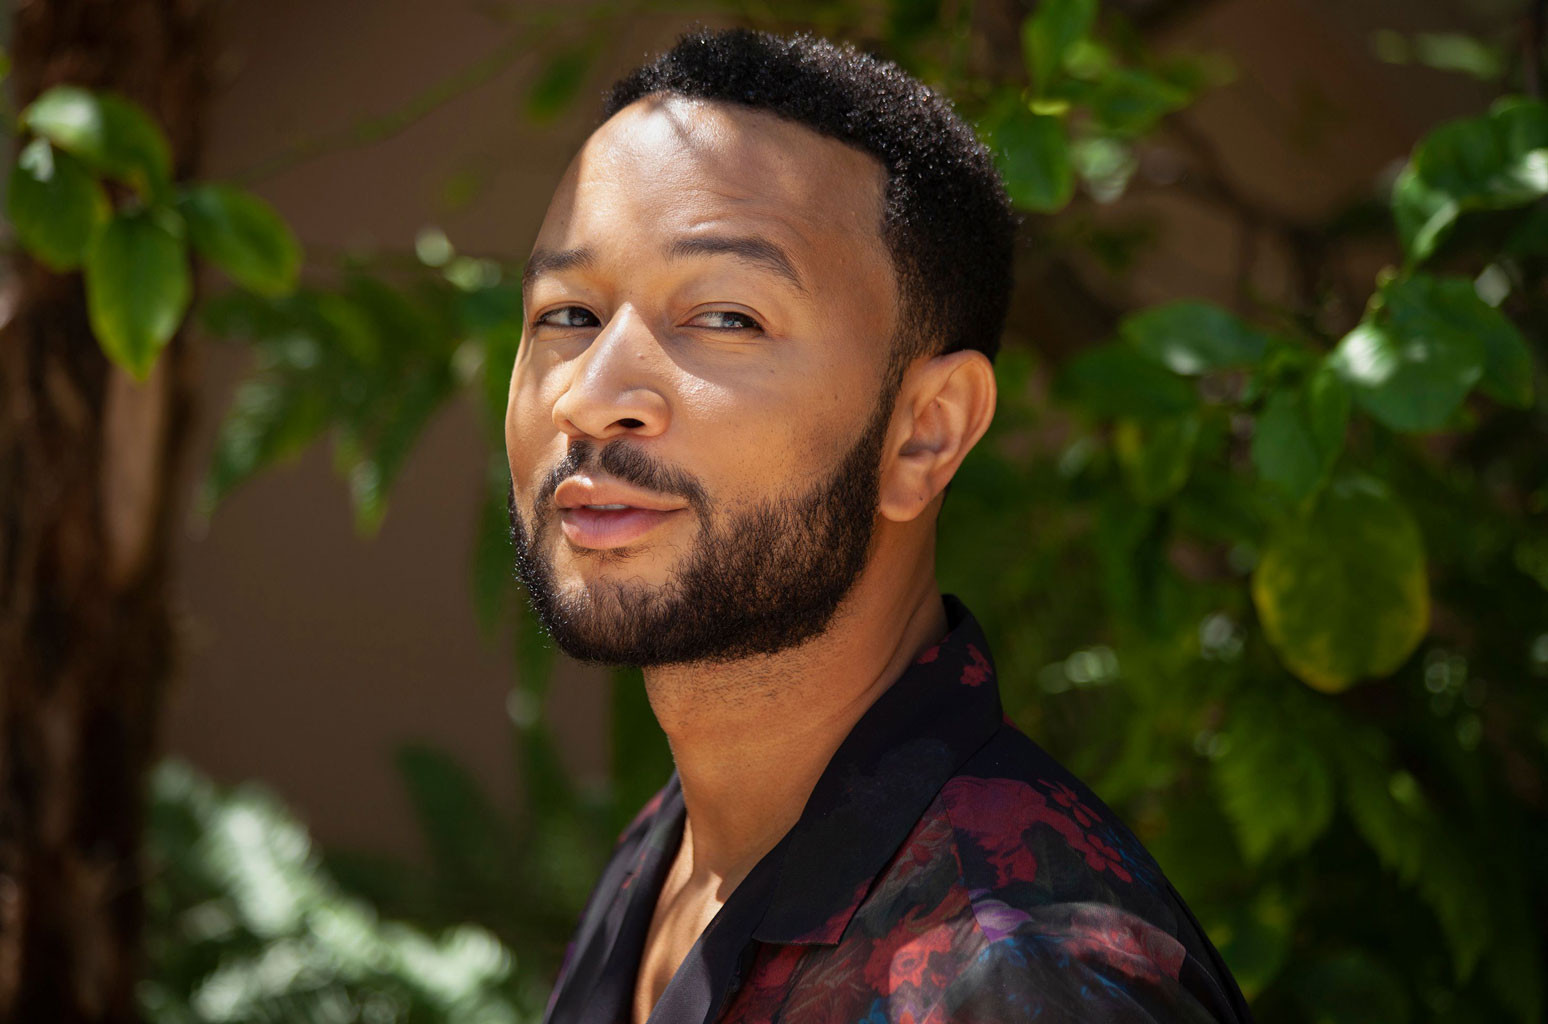 Stevie Wonder, Common & More Joined John Legend For His 'Bigger Love Father's Day' Special